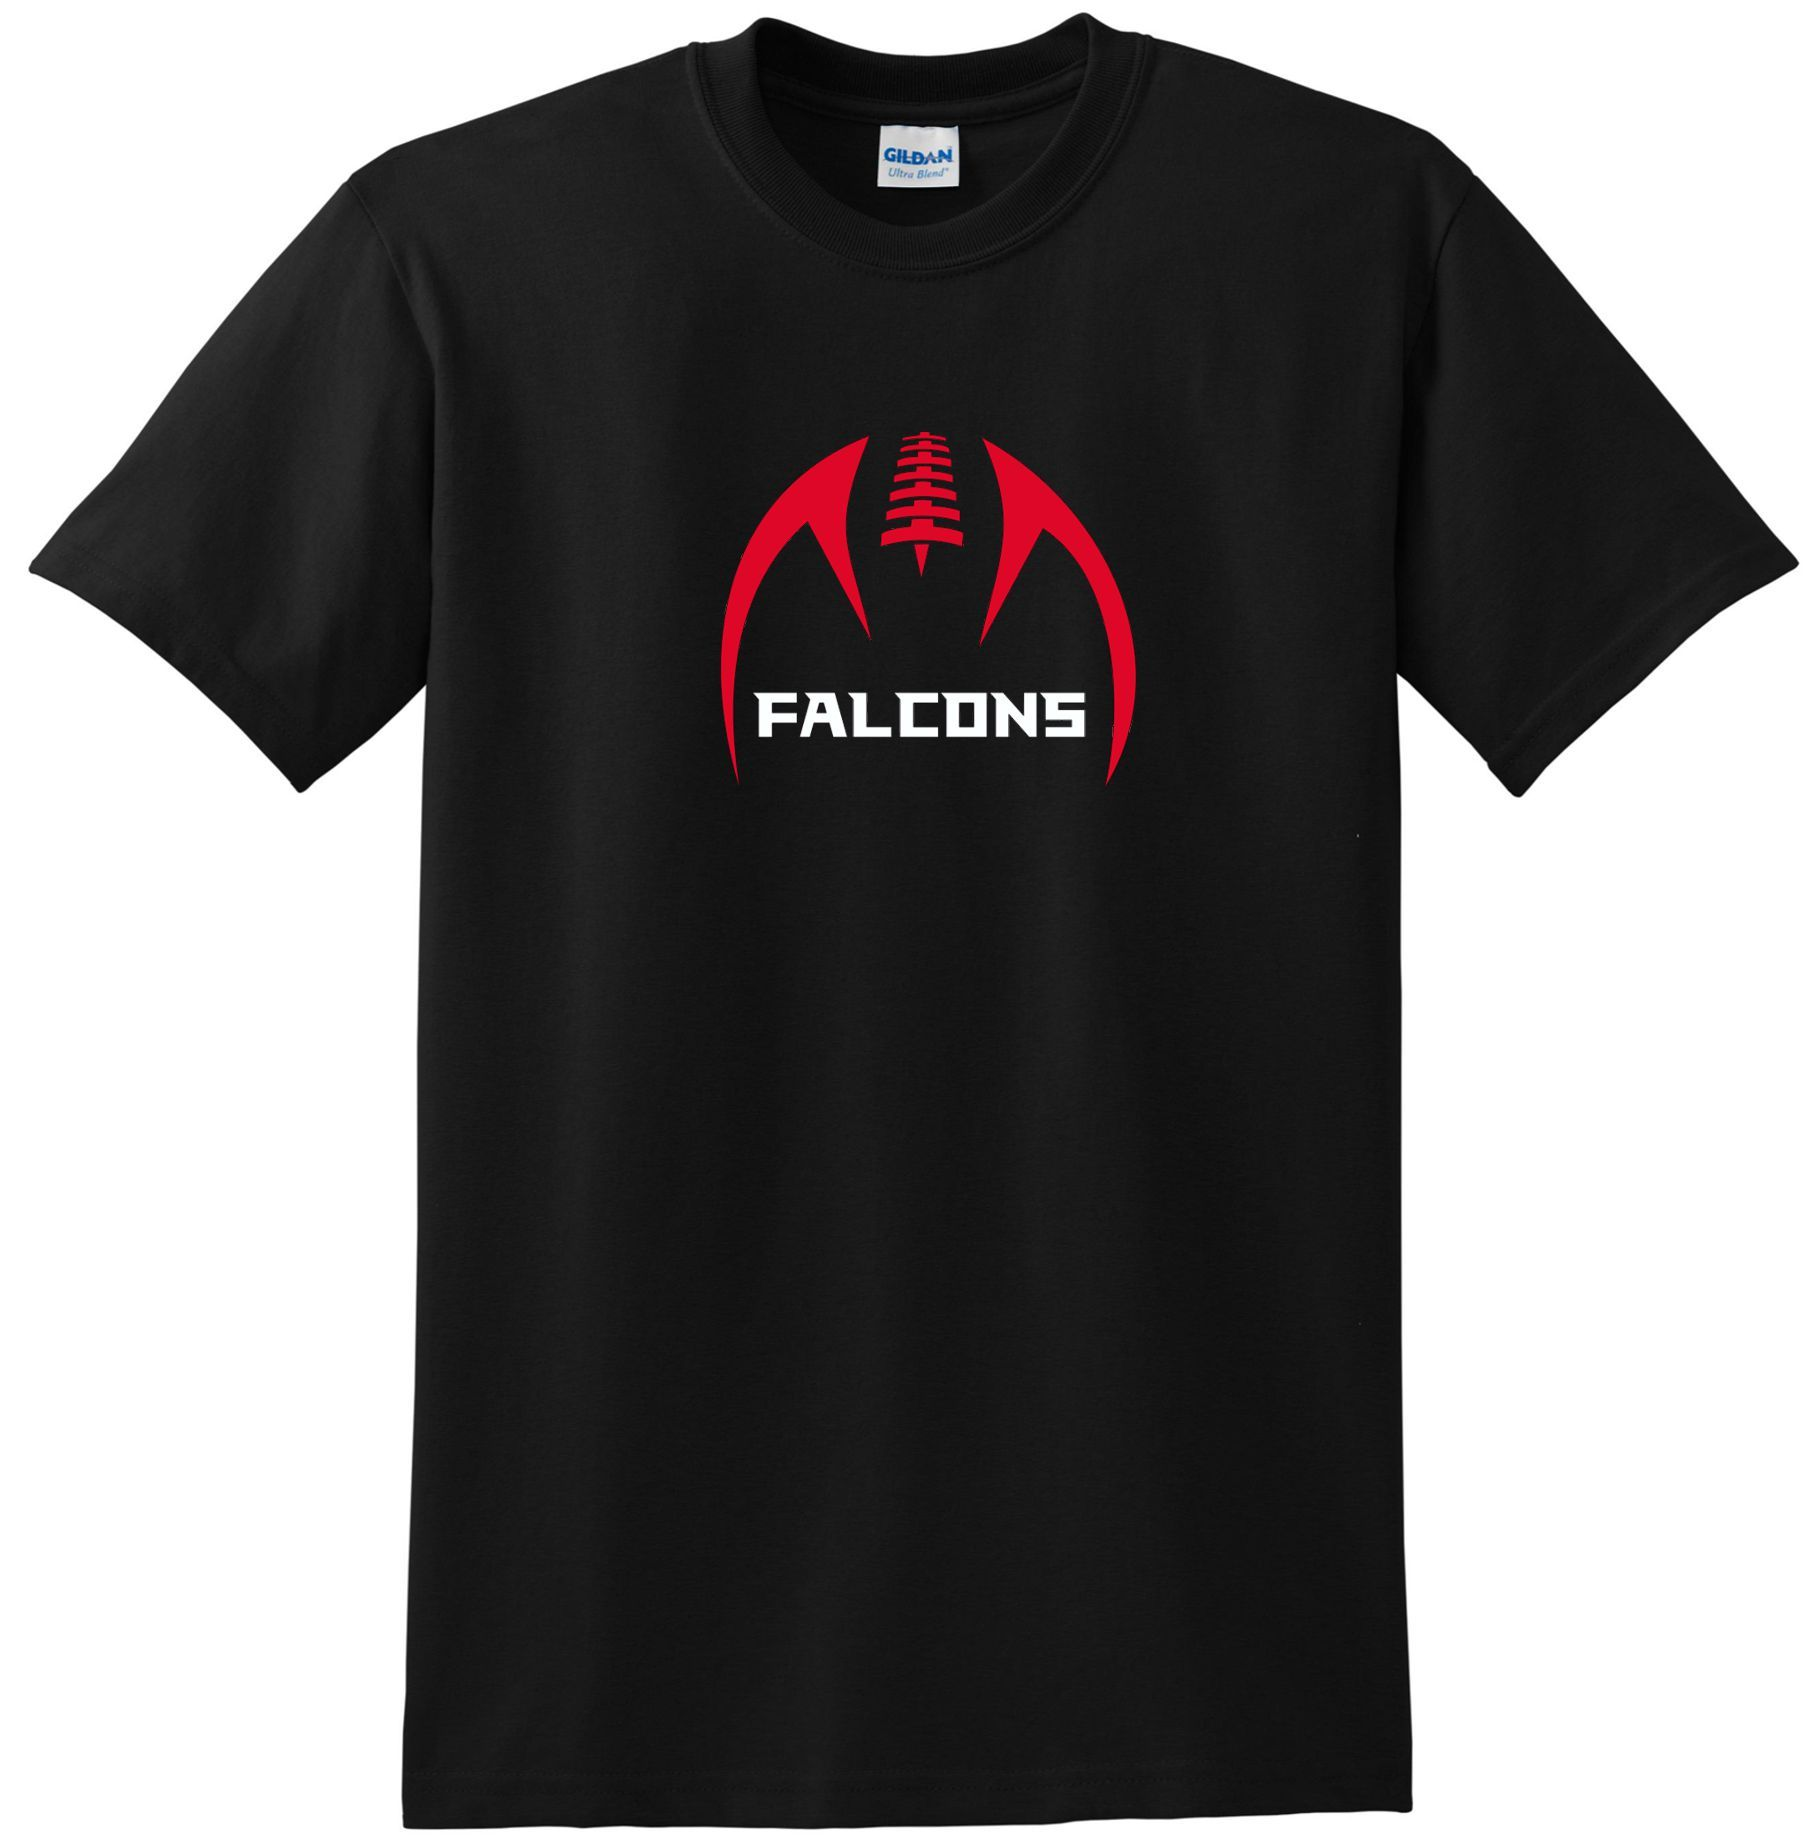 Falcons Tee Atlanta Falcons T Shirt Political Tee Patriotic Shirts